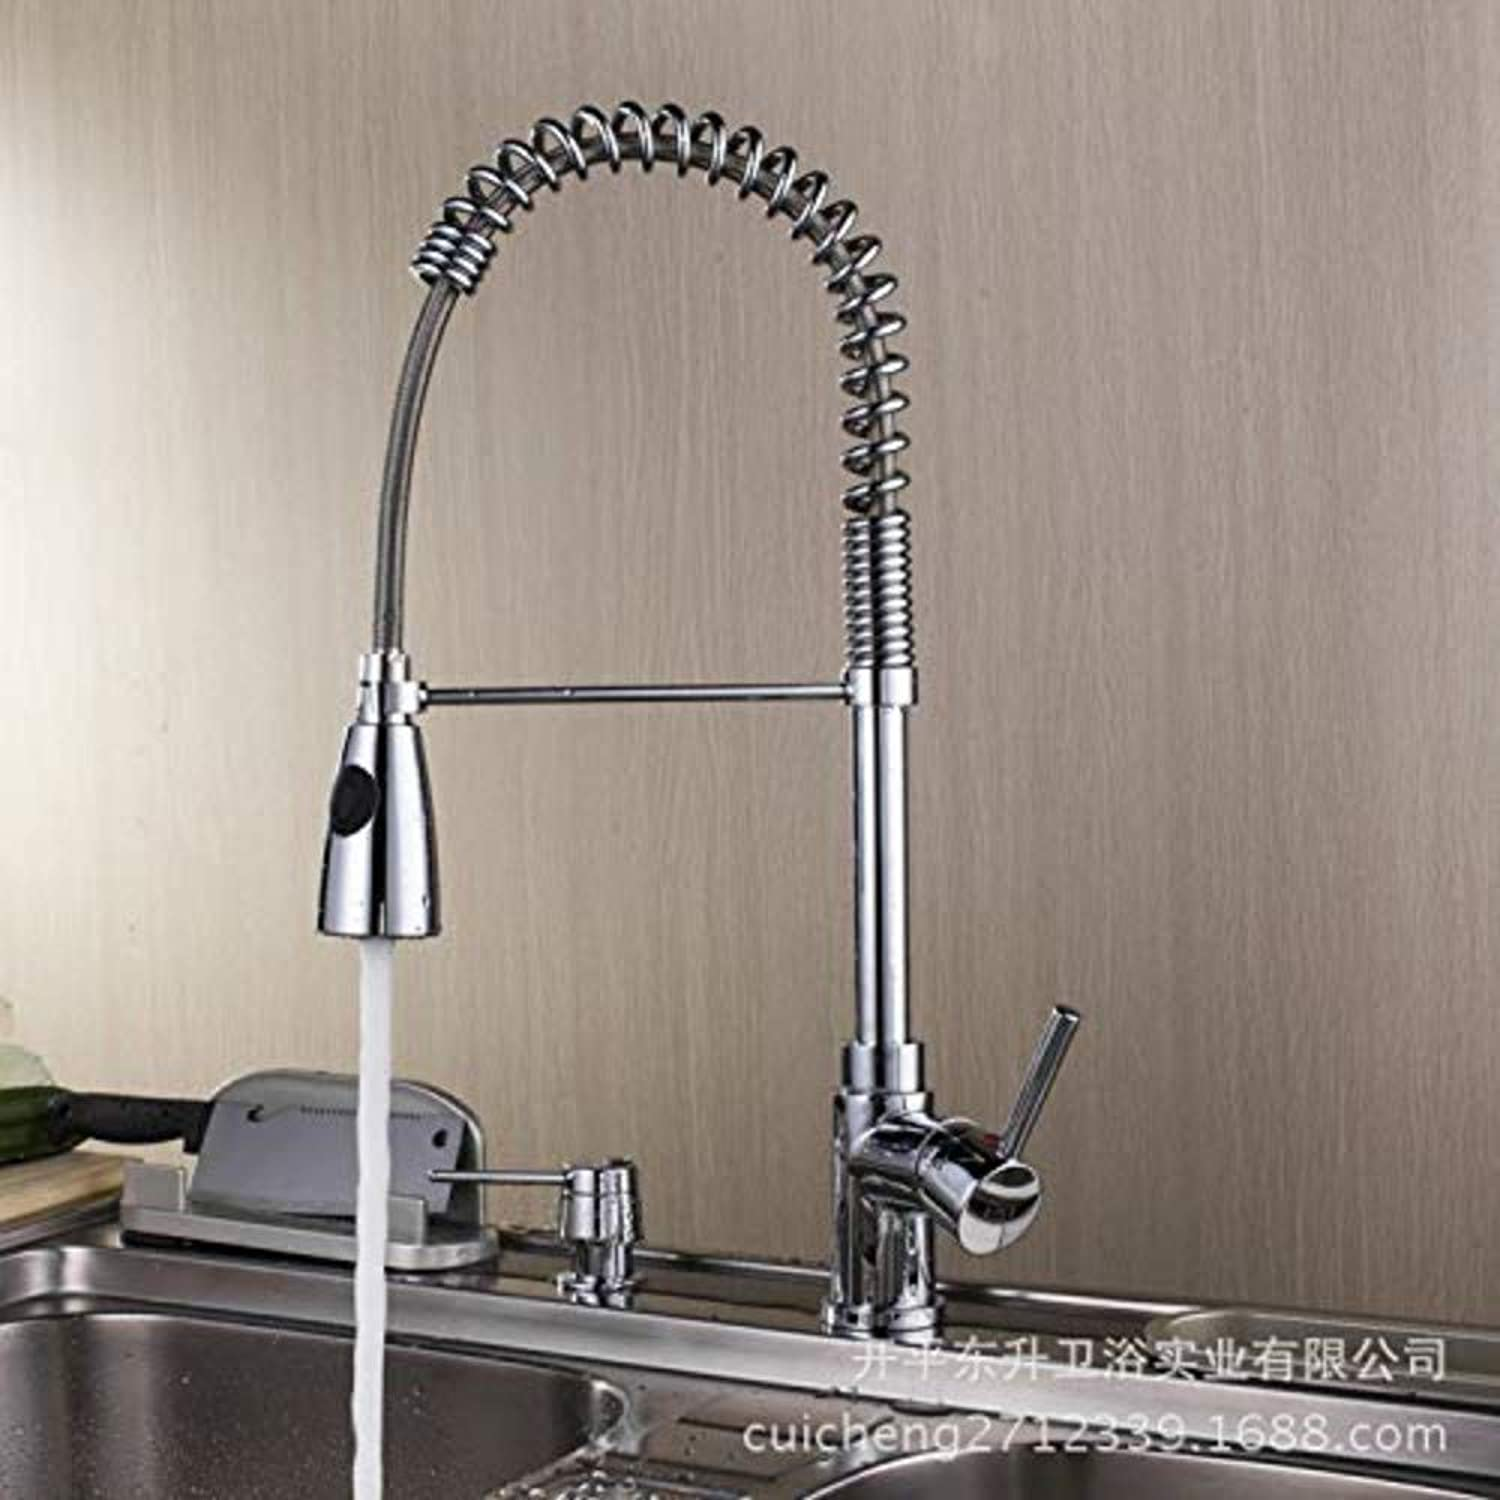 Chrome-Plated Brass Faucet Dish Basin Sink Faucet Pull Type Hot and Cold Kitchen Sink Sink Faucet